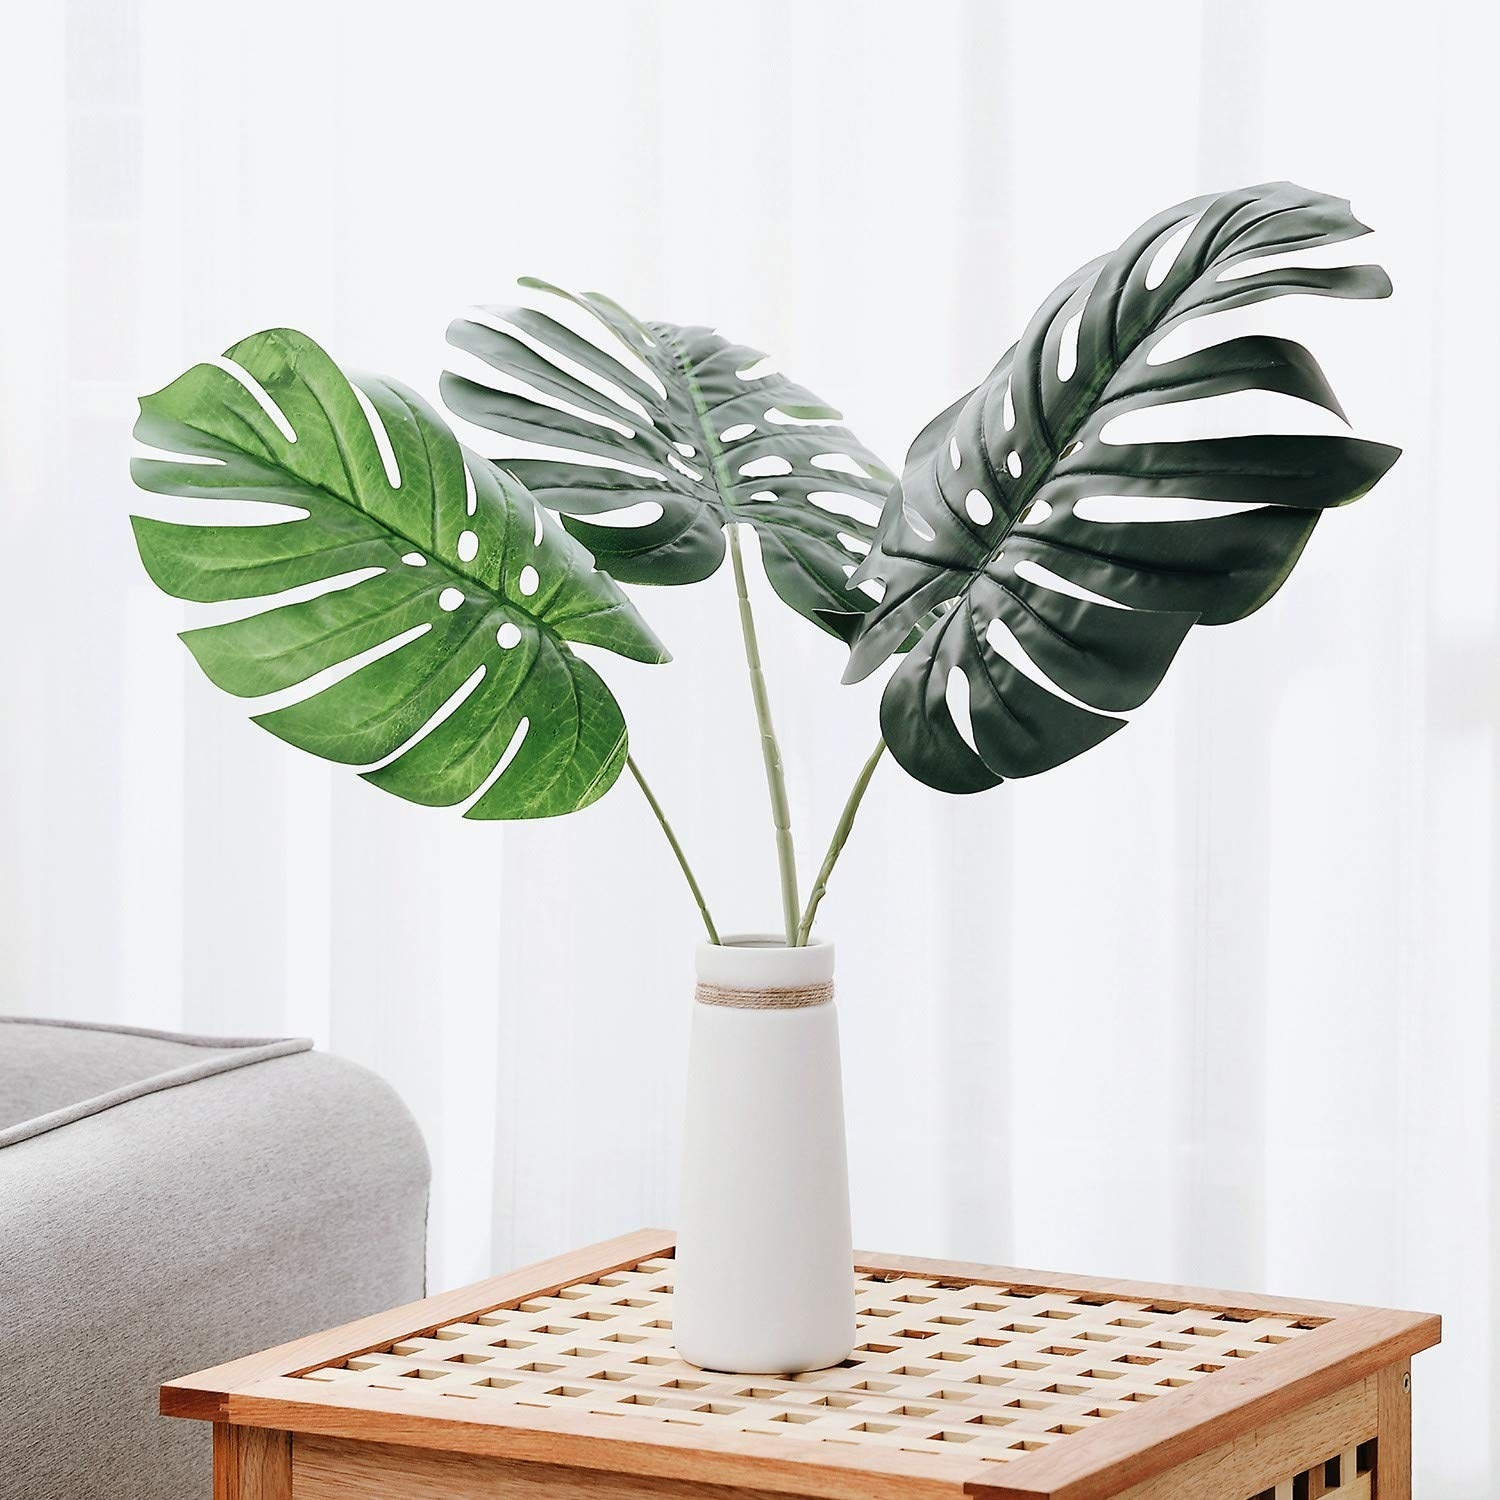 three large plastic monstera leaves in a vase